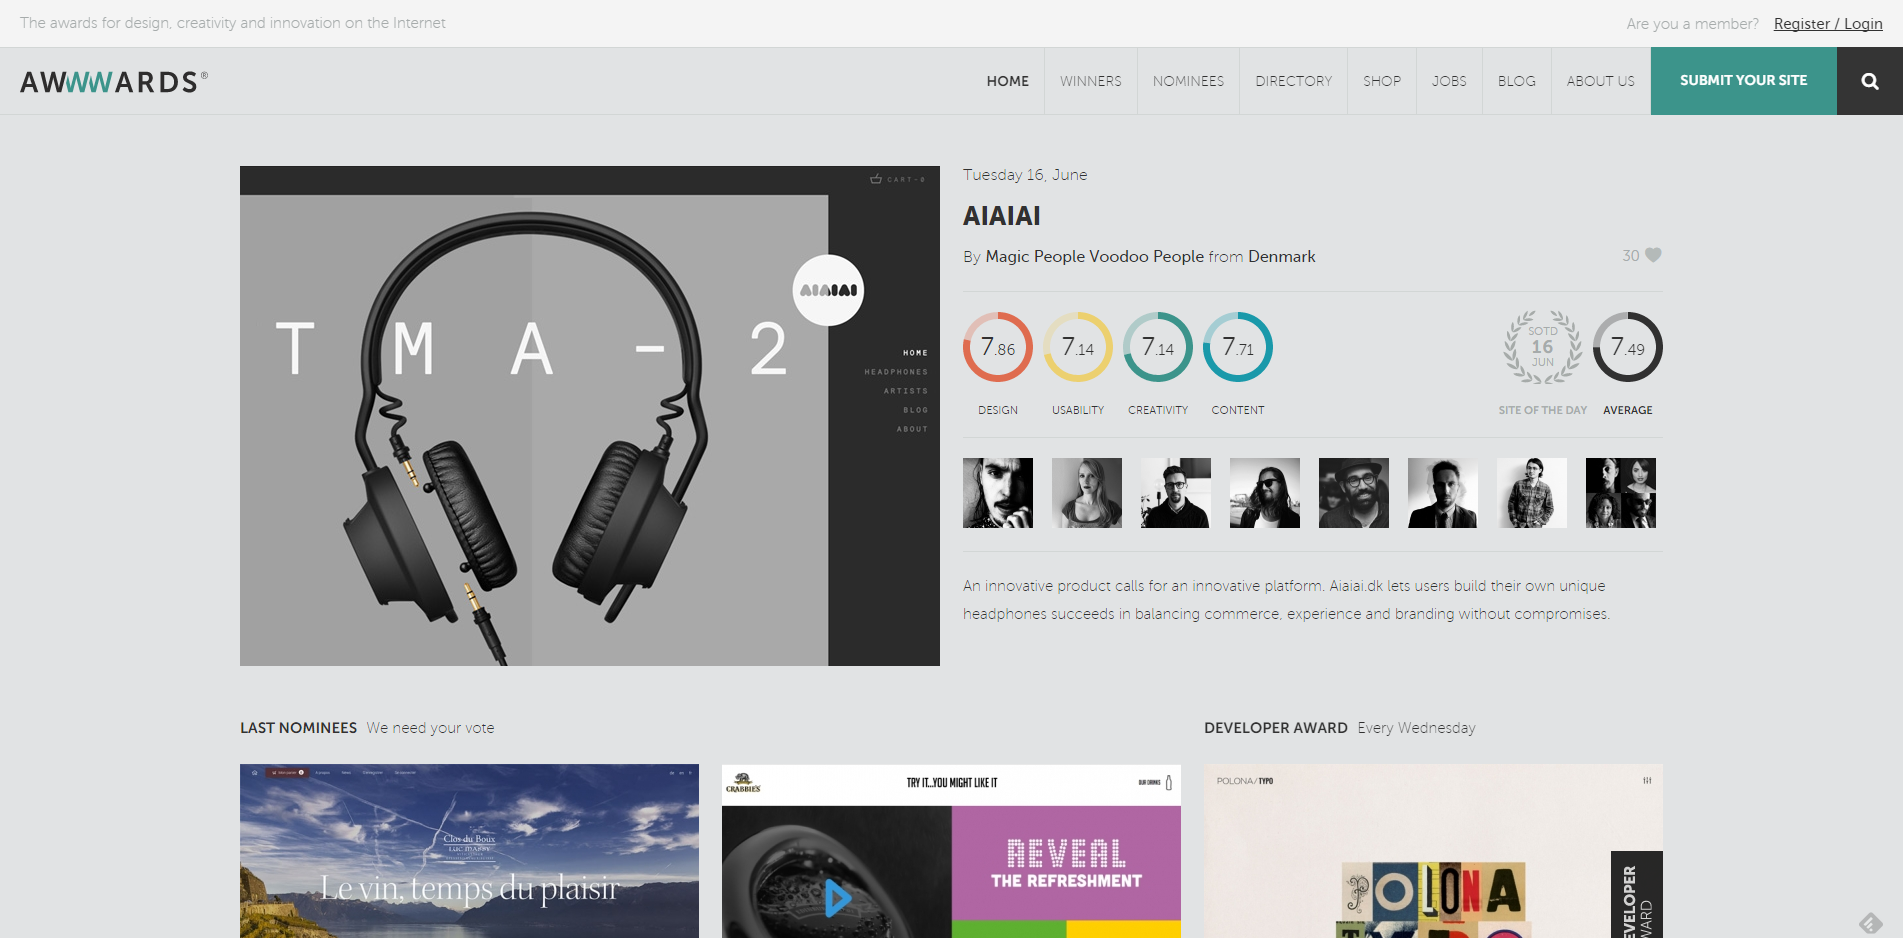 Awwwards Website Awards Best Web Design Trends